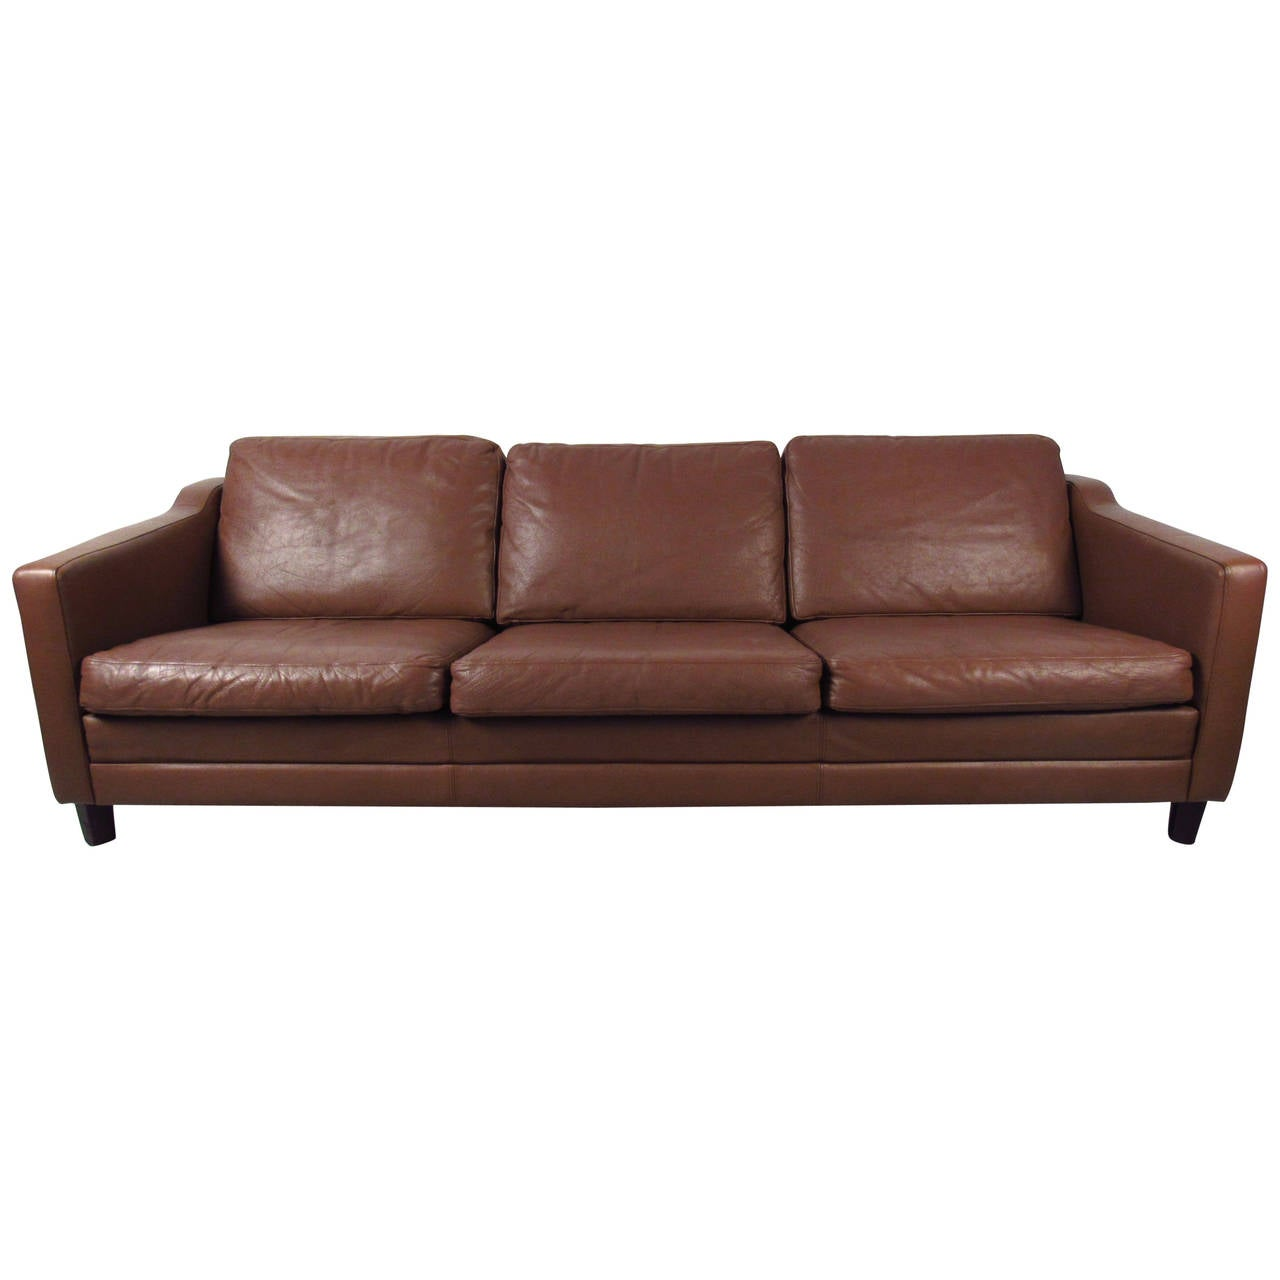 Mid century modern danish leather sofa in the style of for I contemporary furniture